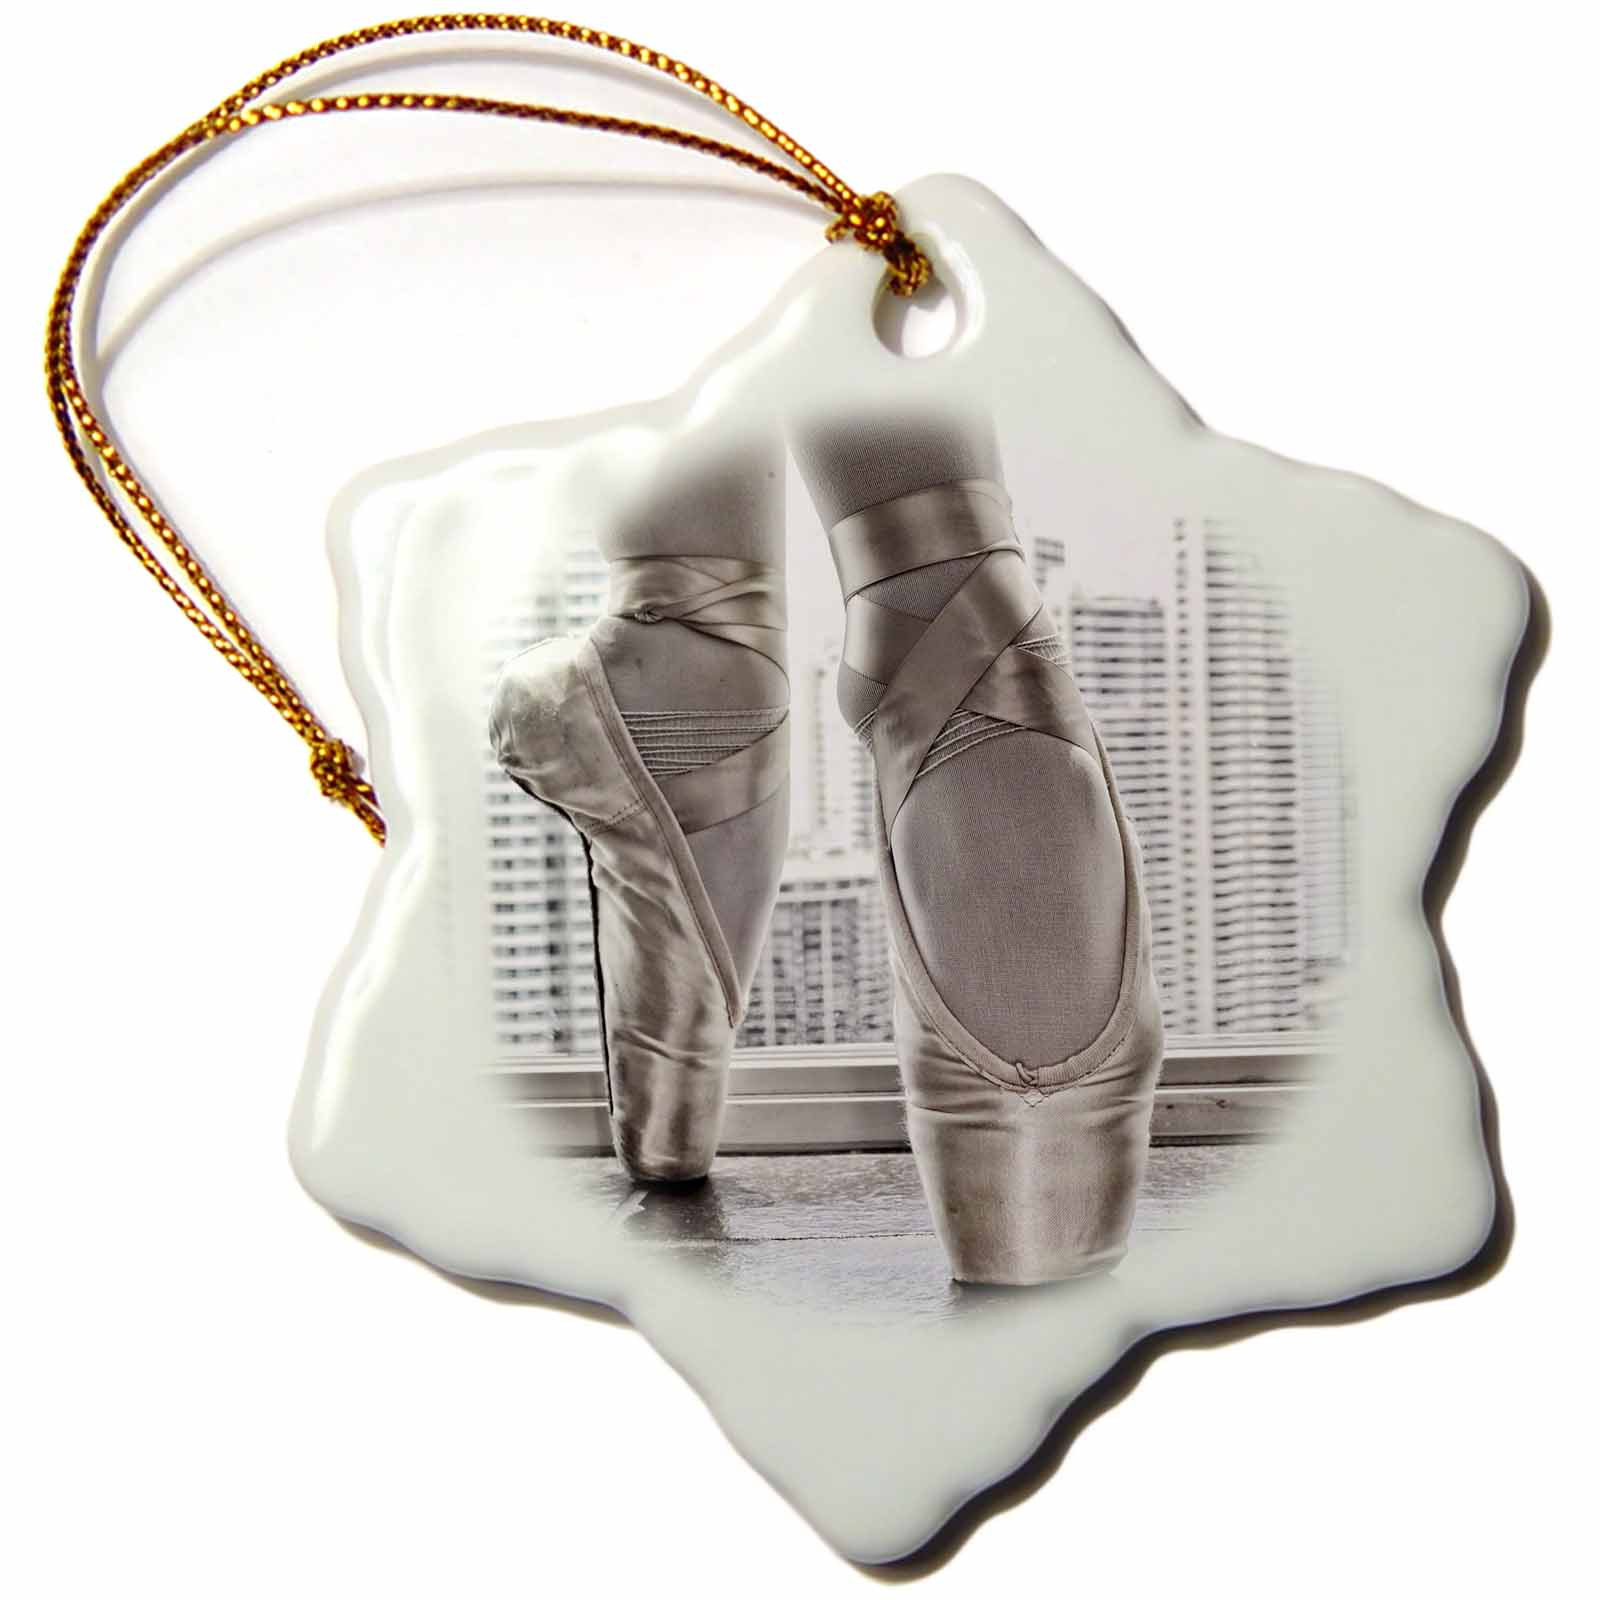 3dRose Ballerina in pointe shoes with buildings behind, Snowflake Ornament, Porcelain, 3-inch